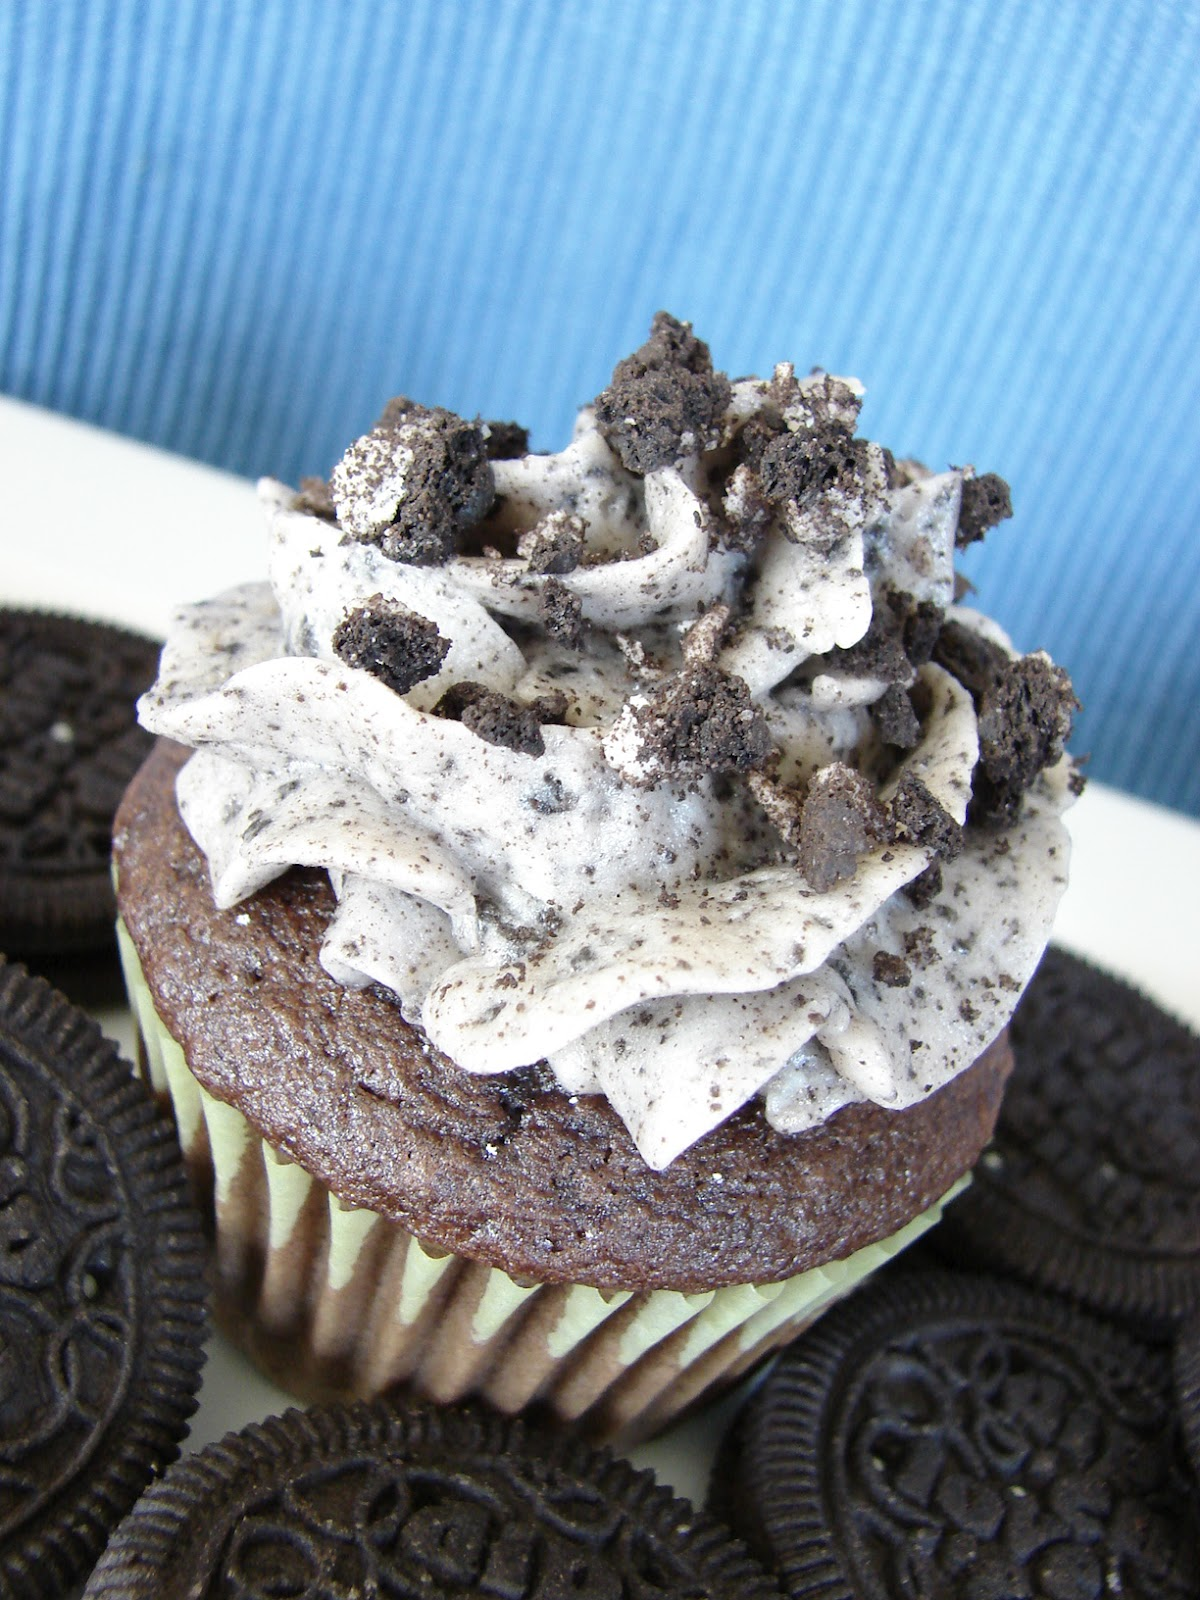 The Royal Cook: Cookies and Cream Frosting